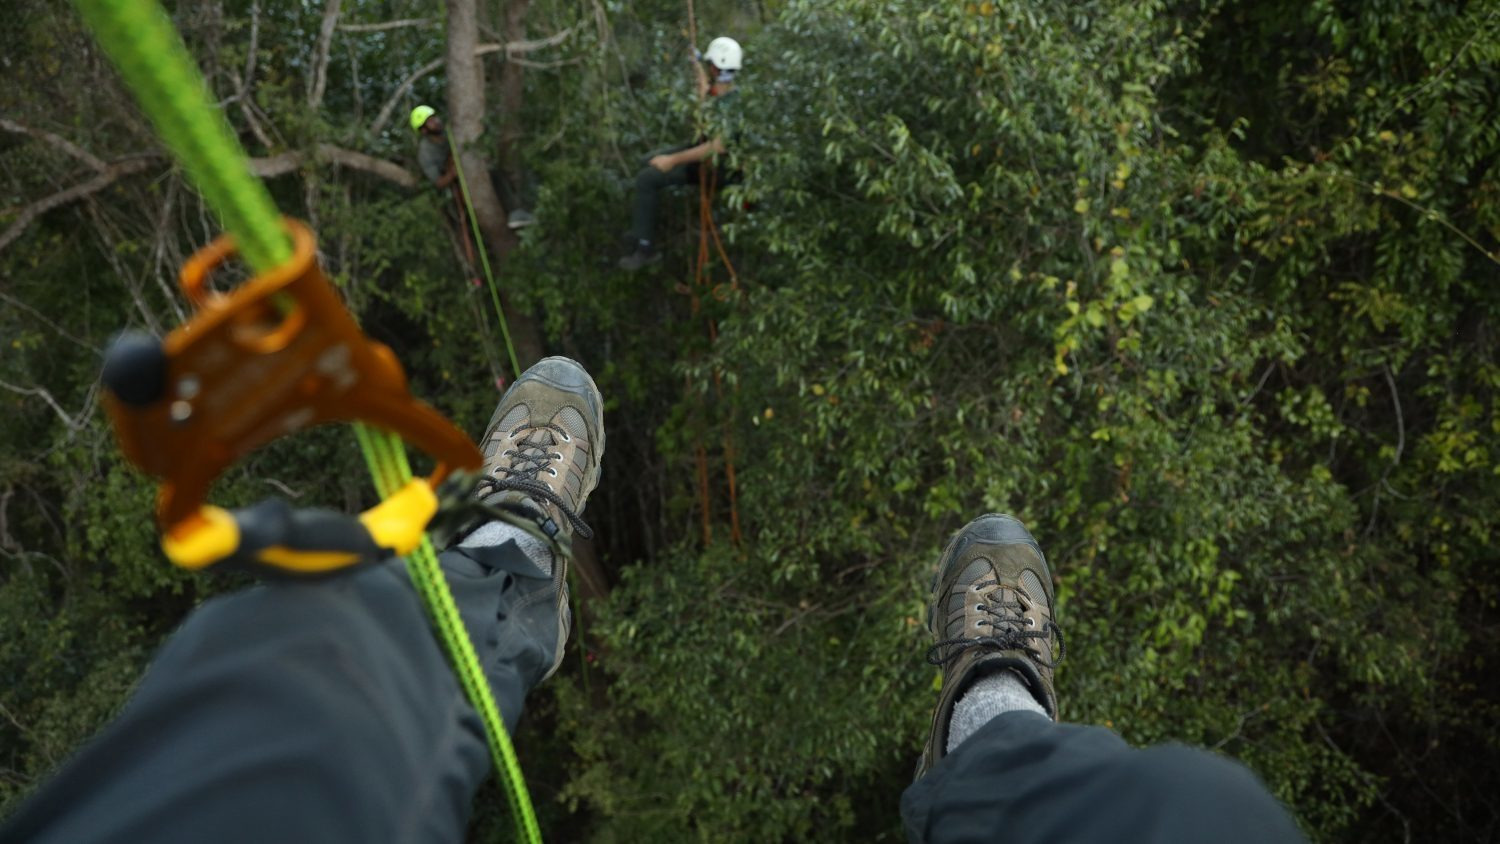 A photographer's view from the top of a tree canopy